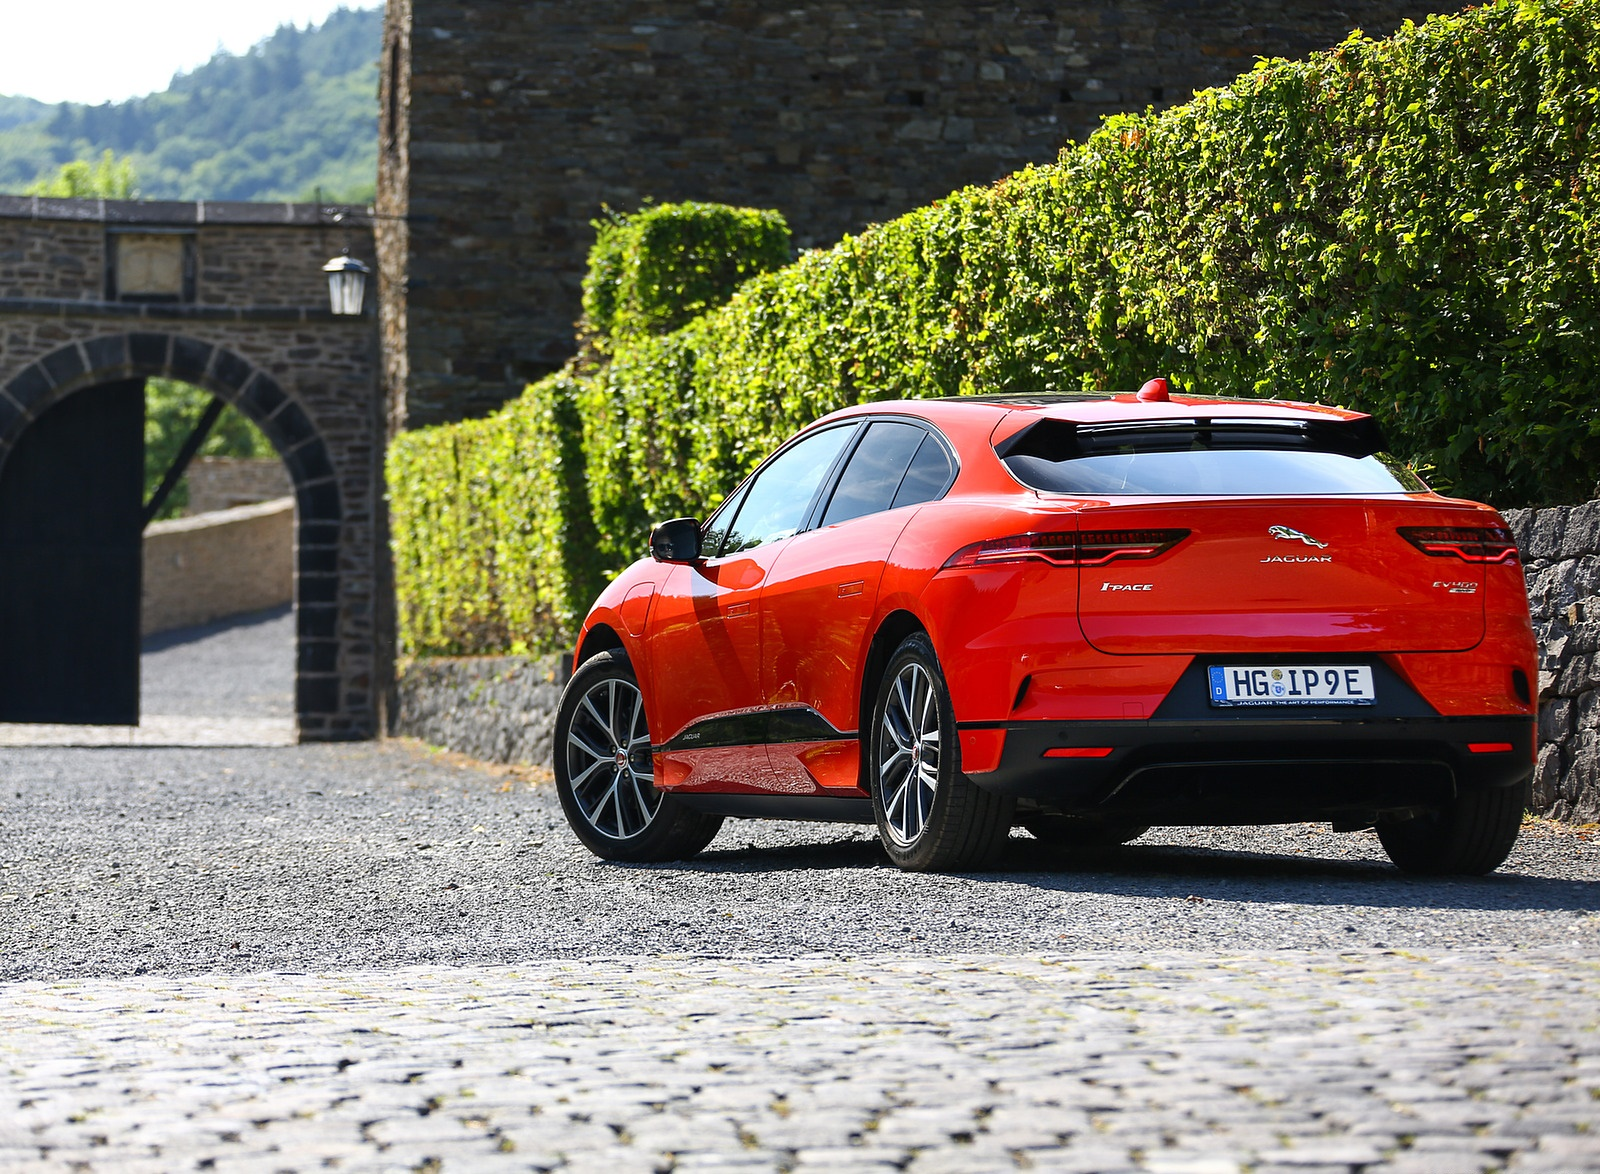 2019 Jaguar I-PACE EV400 AWD HSE First Edition (Color: Photon Red) Rear Three-Quarter Wallpapers #50 of 192